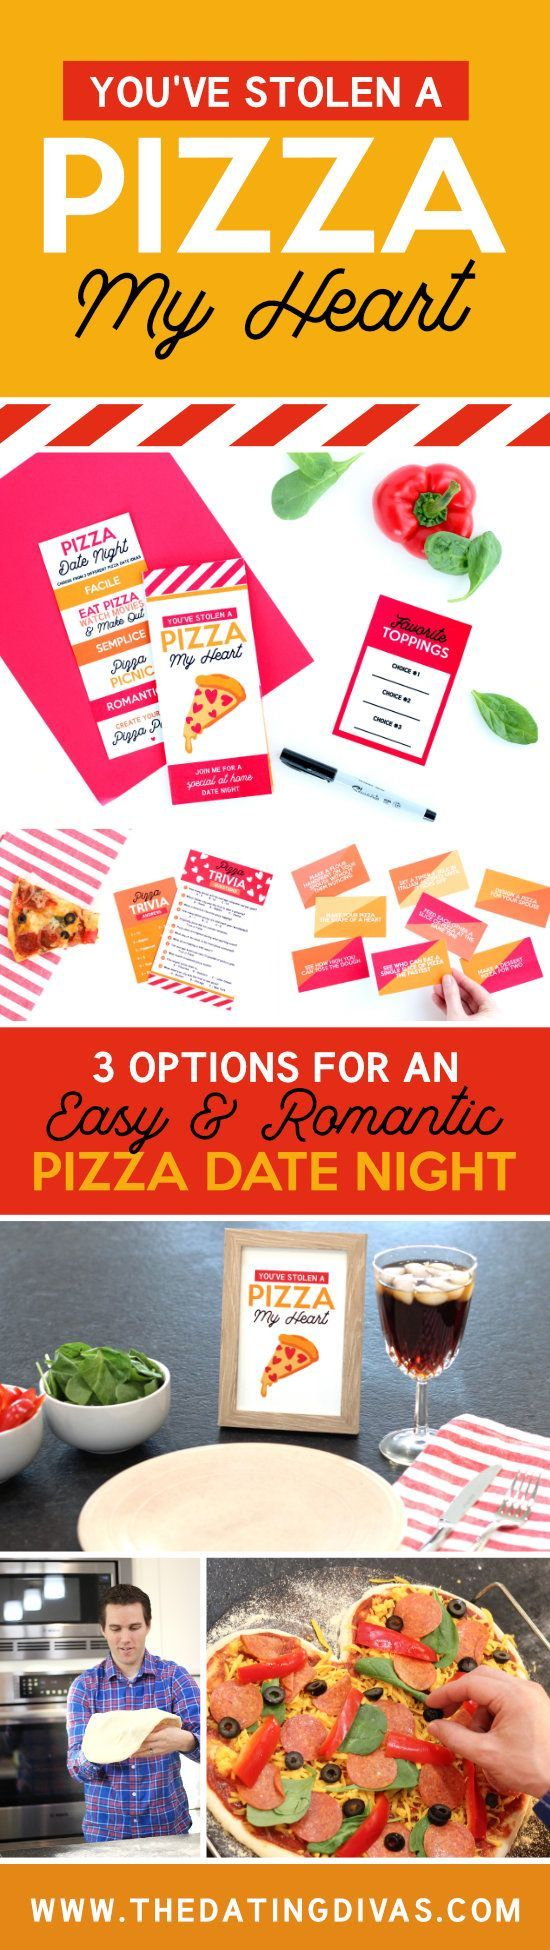 You've Stolen A Pizza My Heart Date Diy gifts for